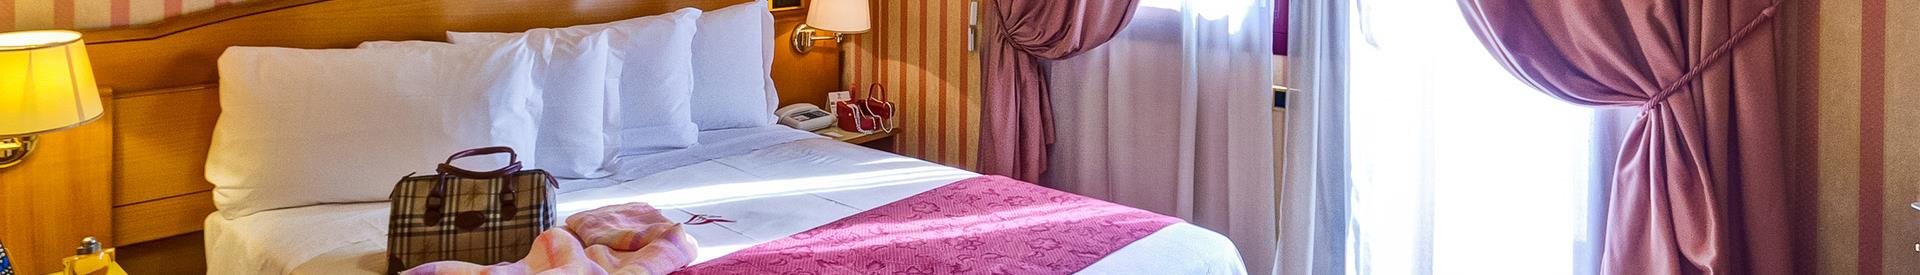 Looking for a hotel for your stay in Fiumicino (RM)? Book/reserve at the Best Western Hotel Rome Airport